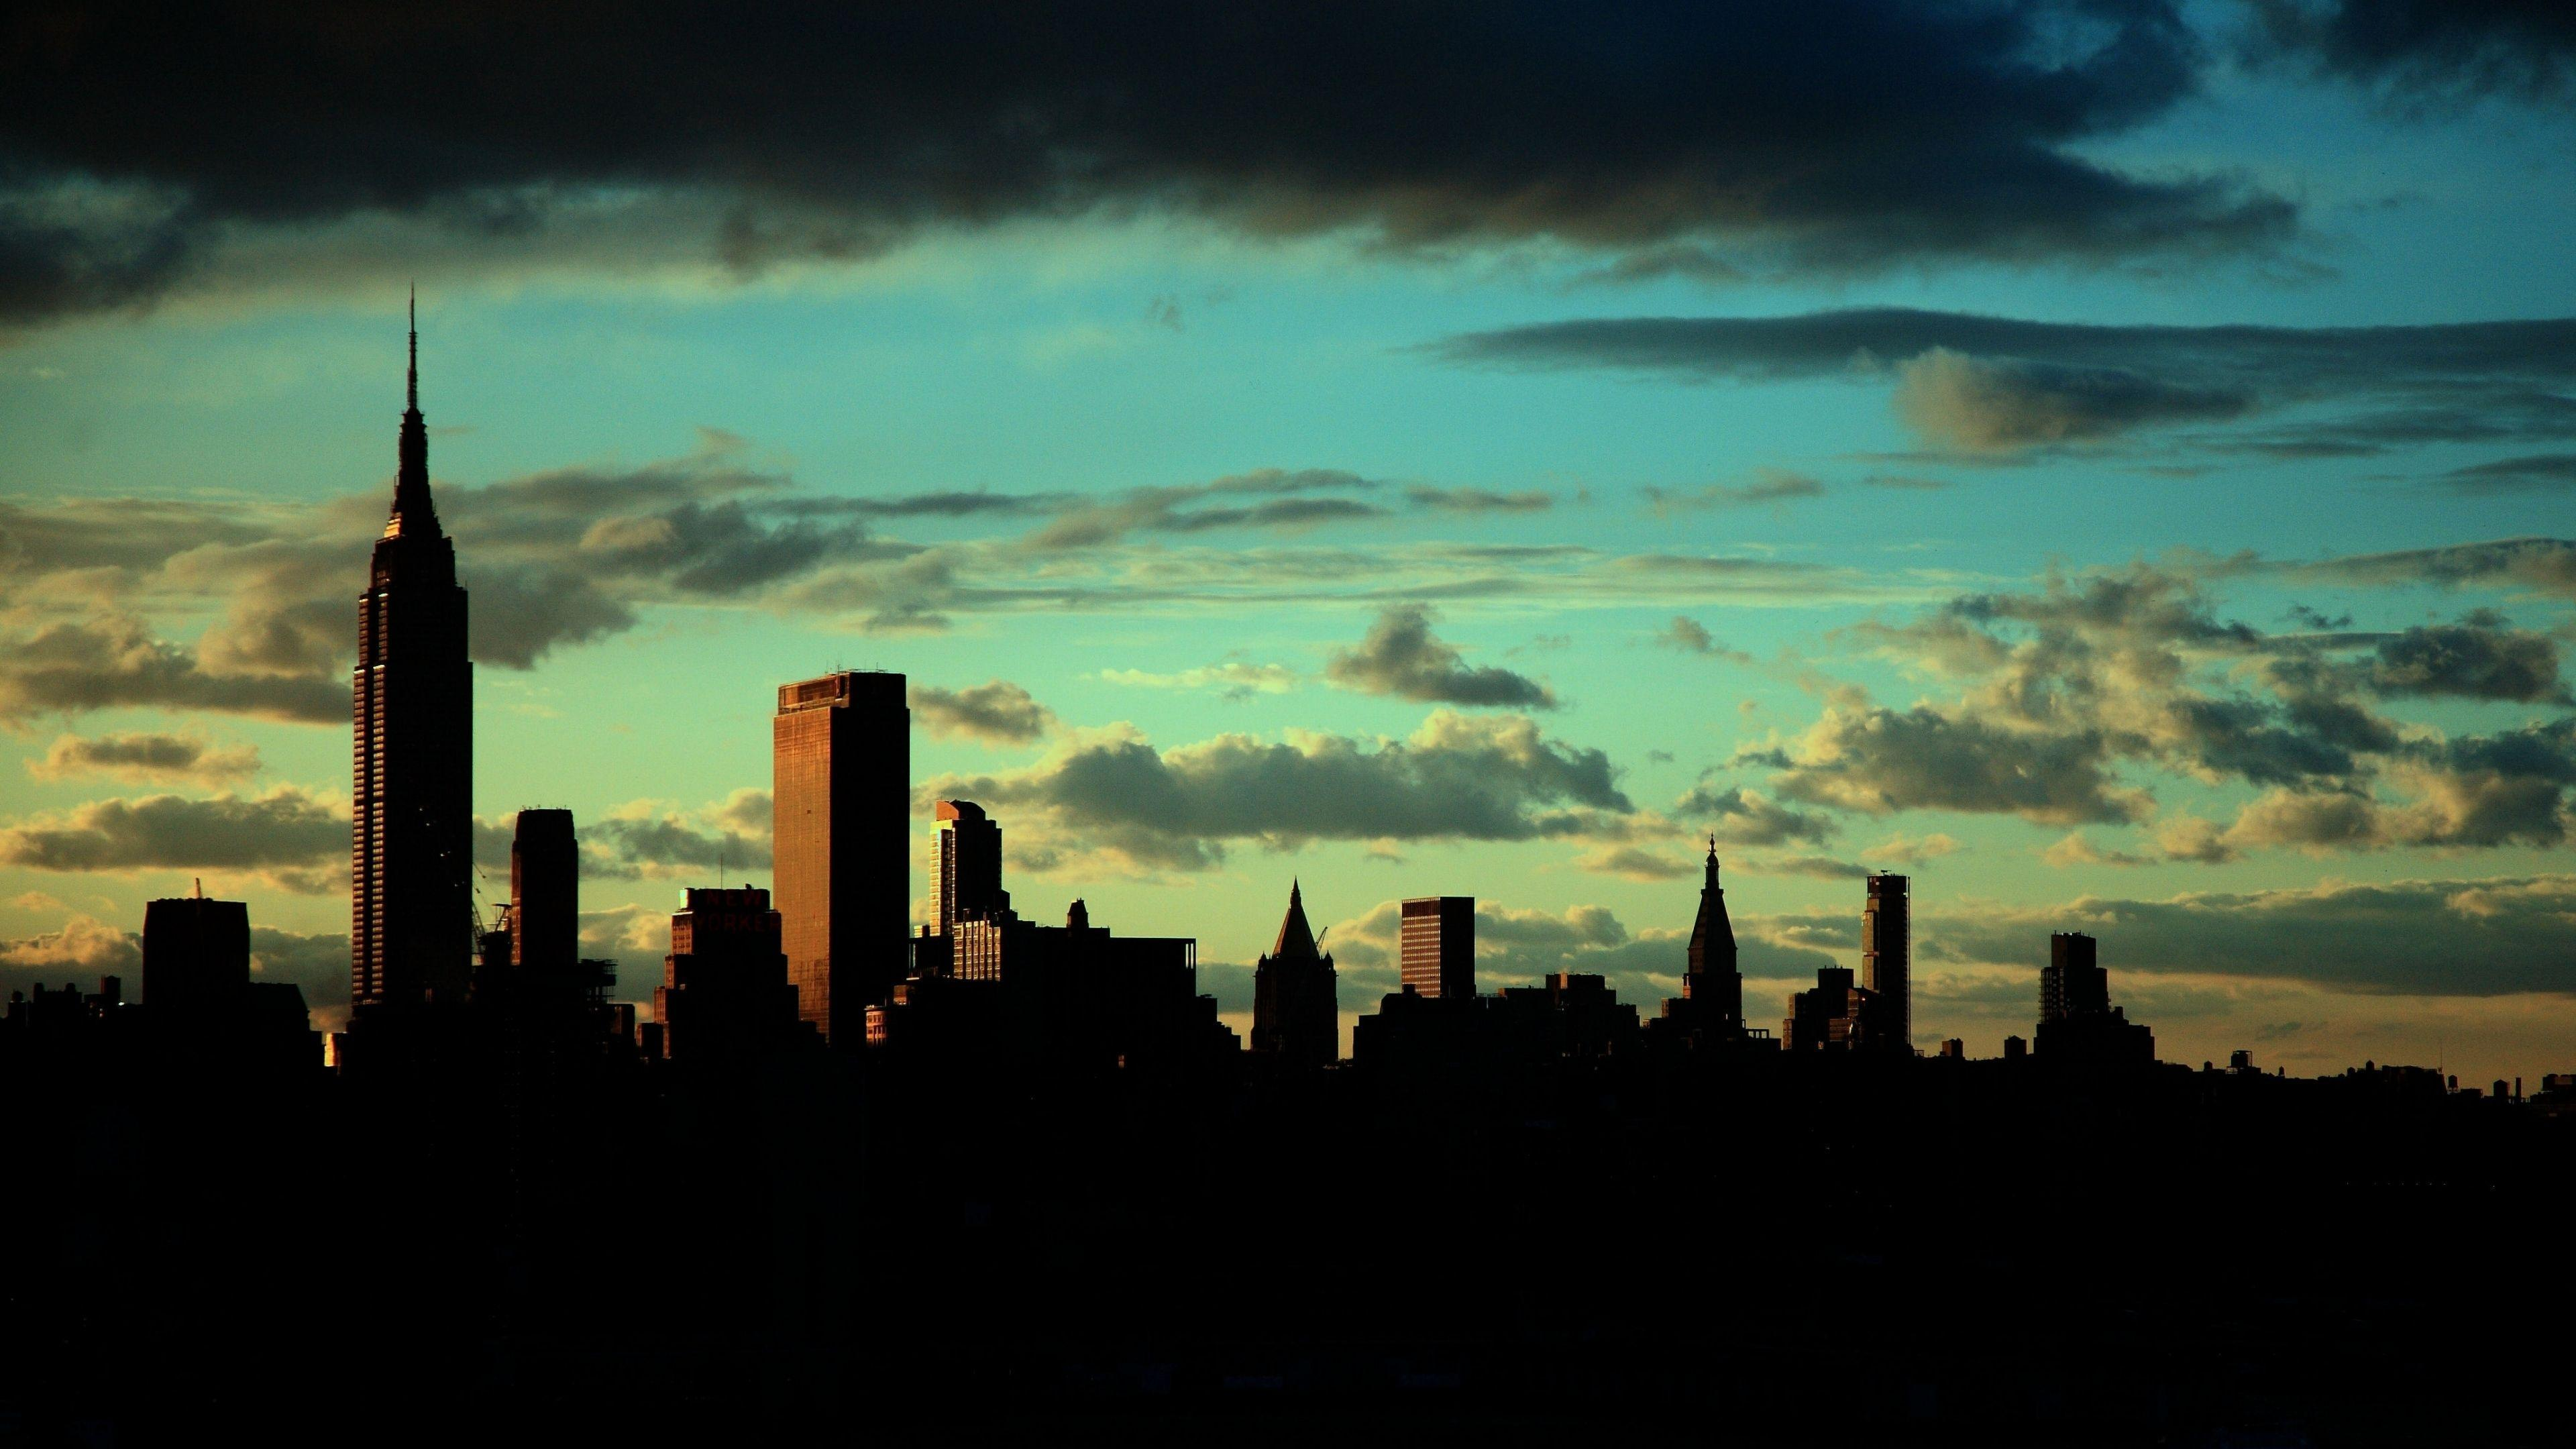 Download Wallpapers 3840x2160 New york, Empire state building